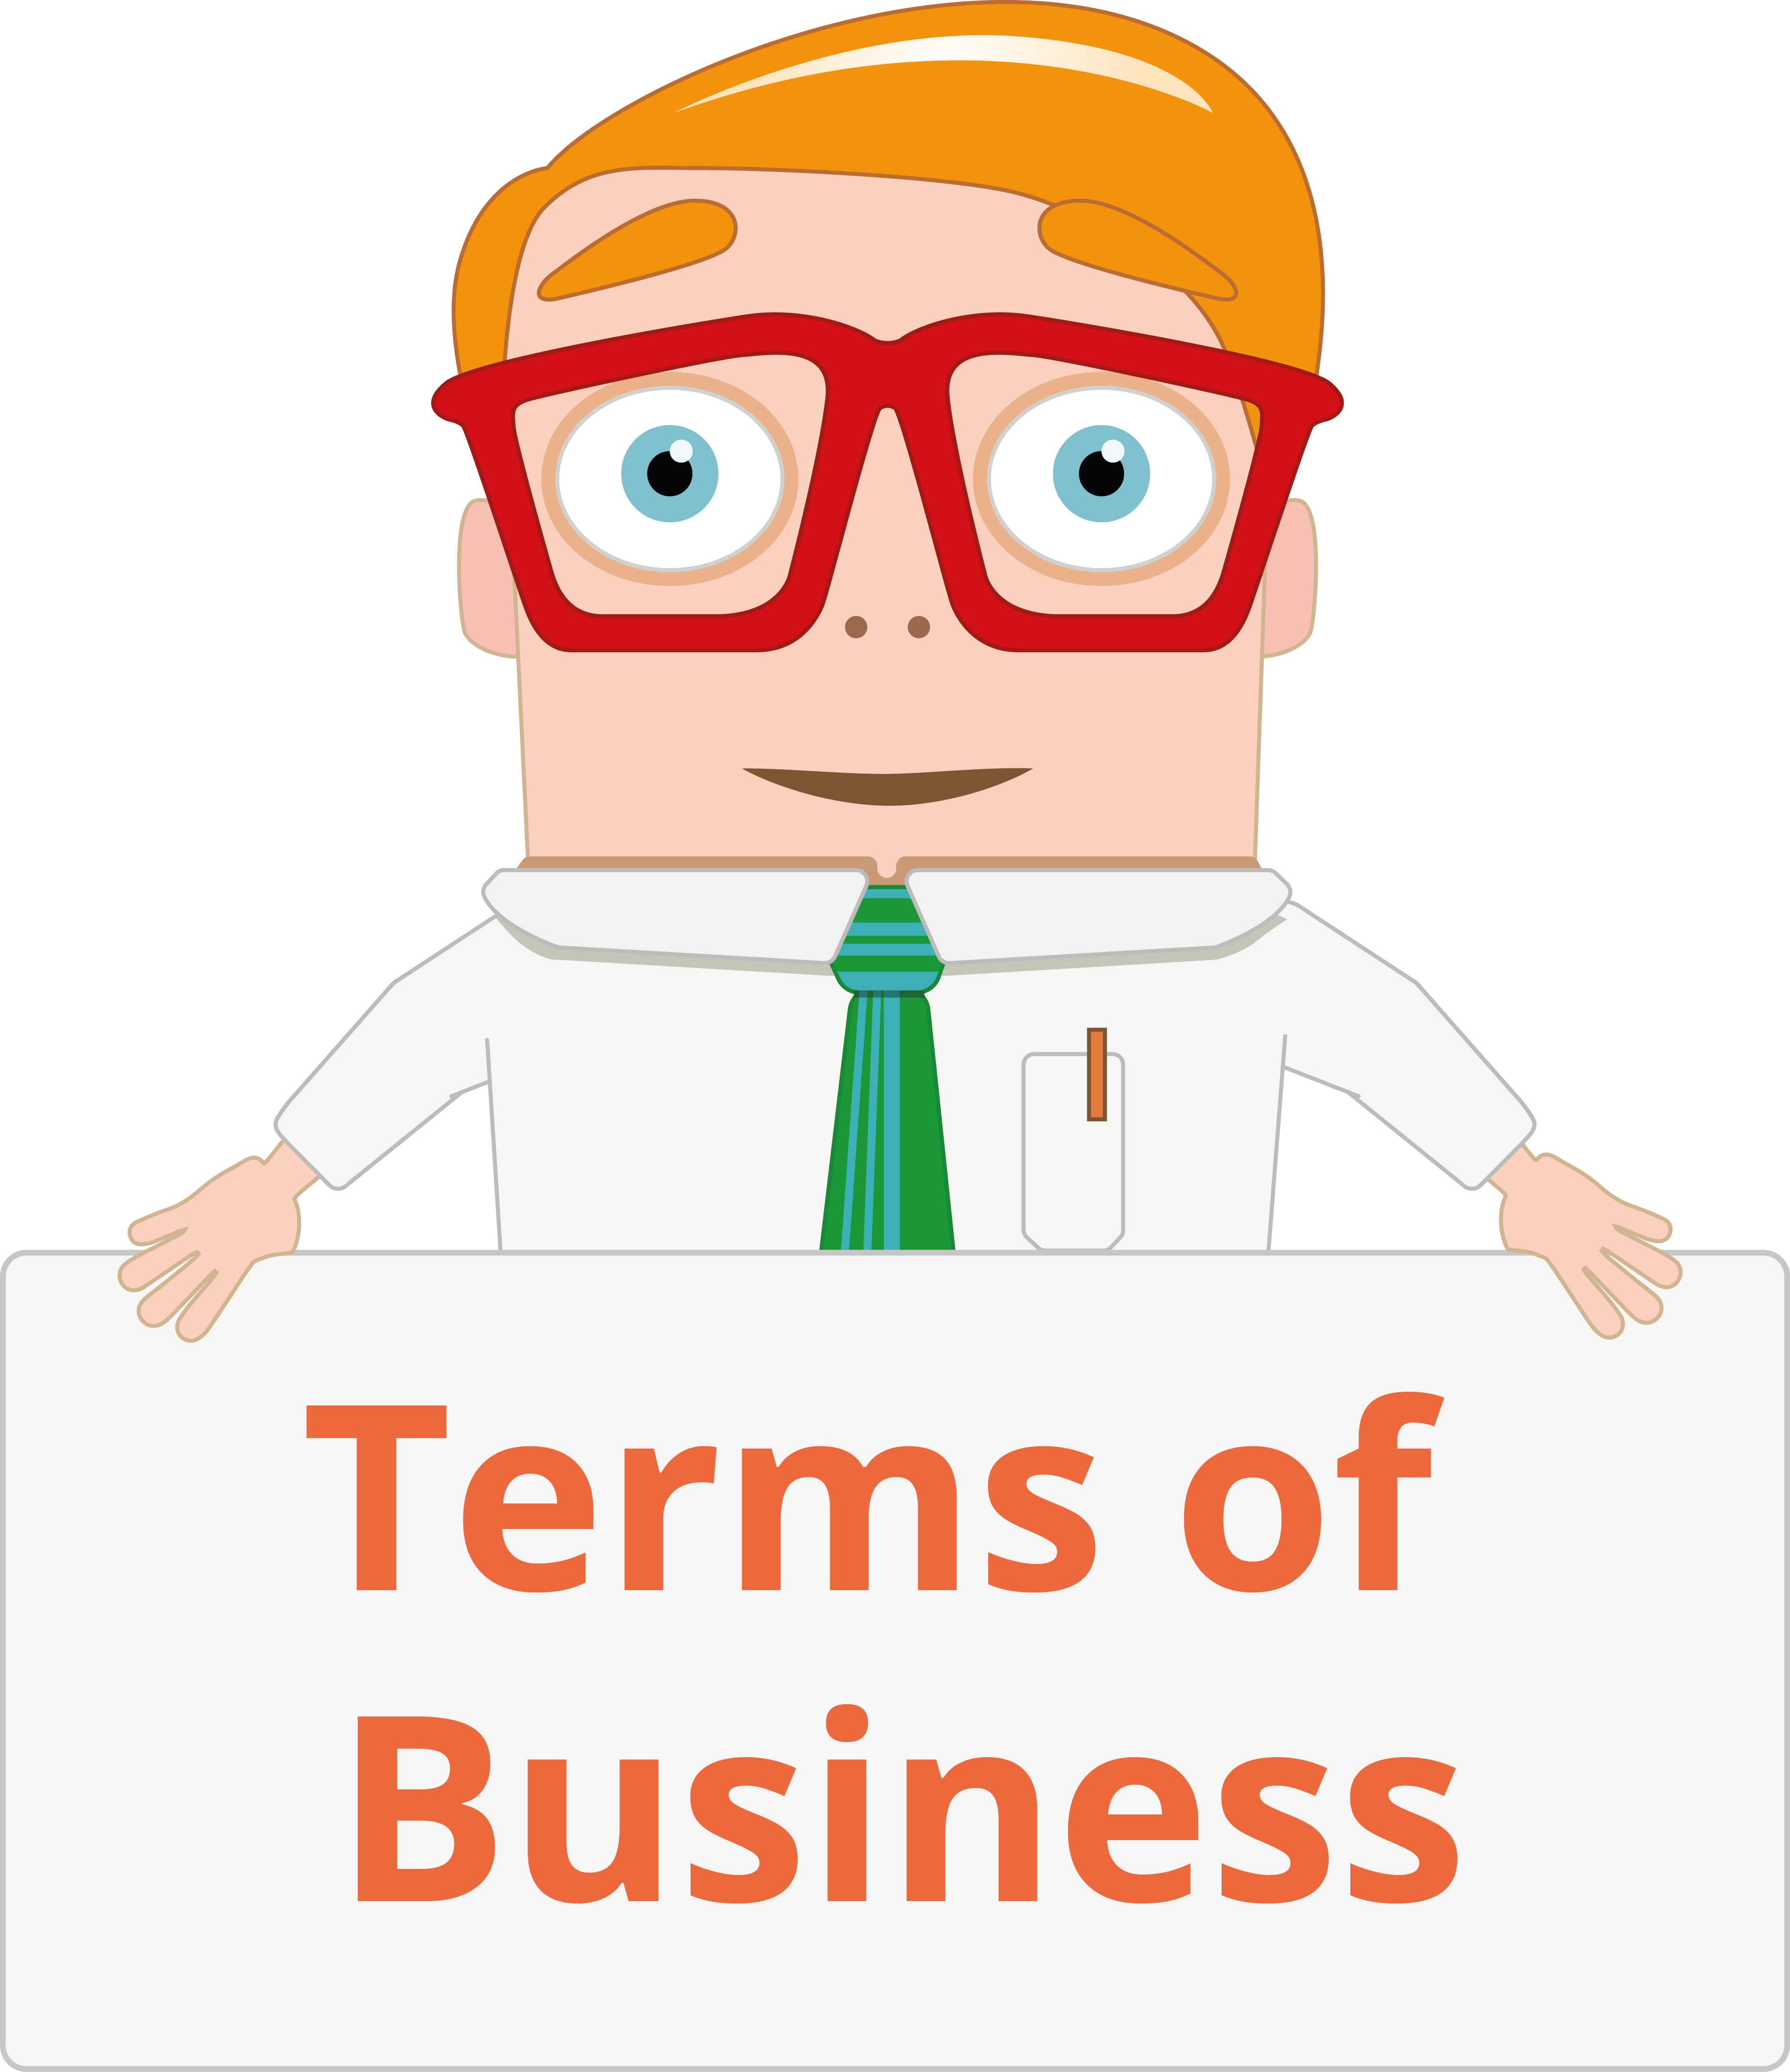 Terms of Business